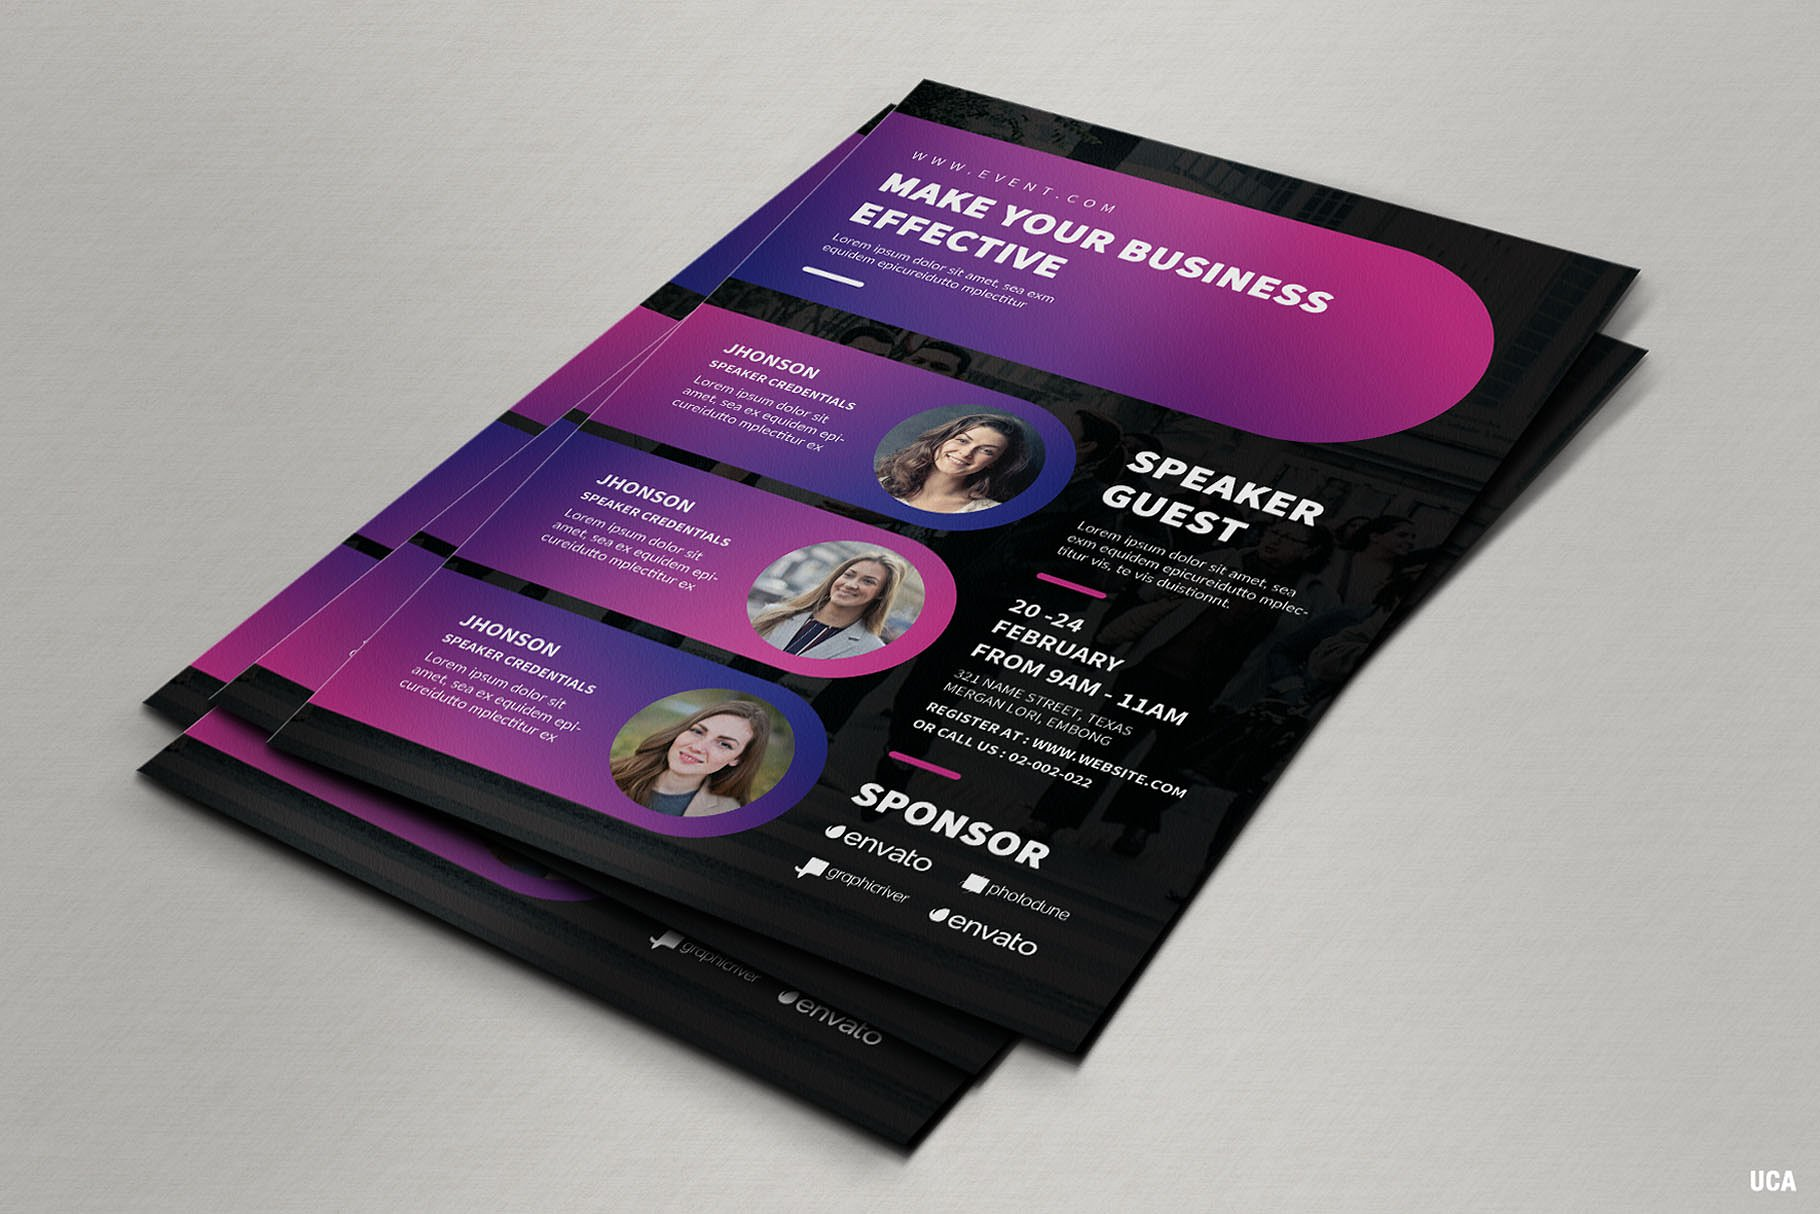 65 creative flyer templates for corporate business decolore net